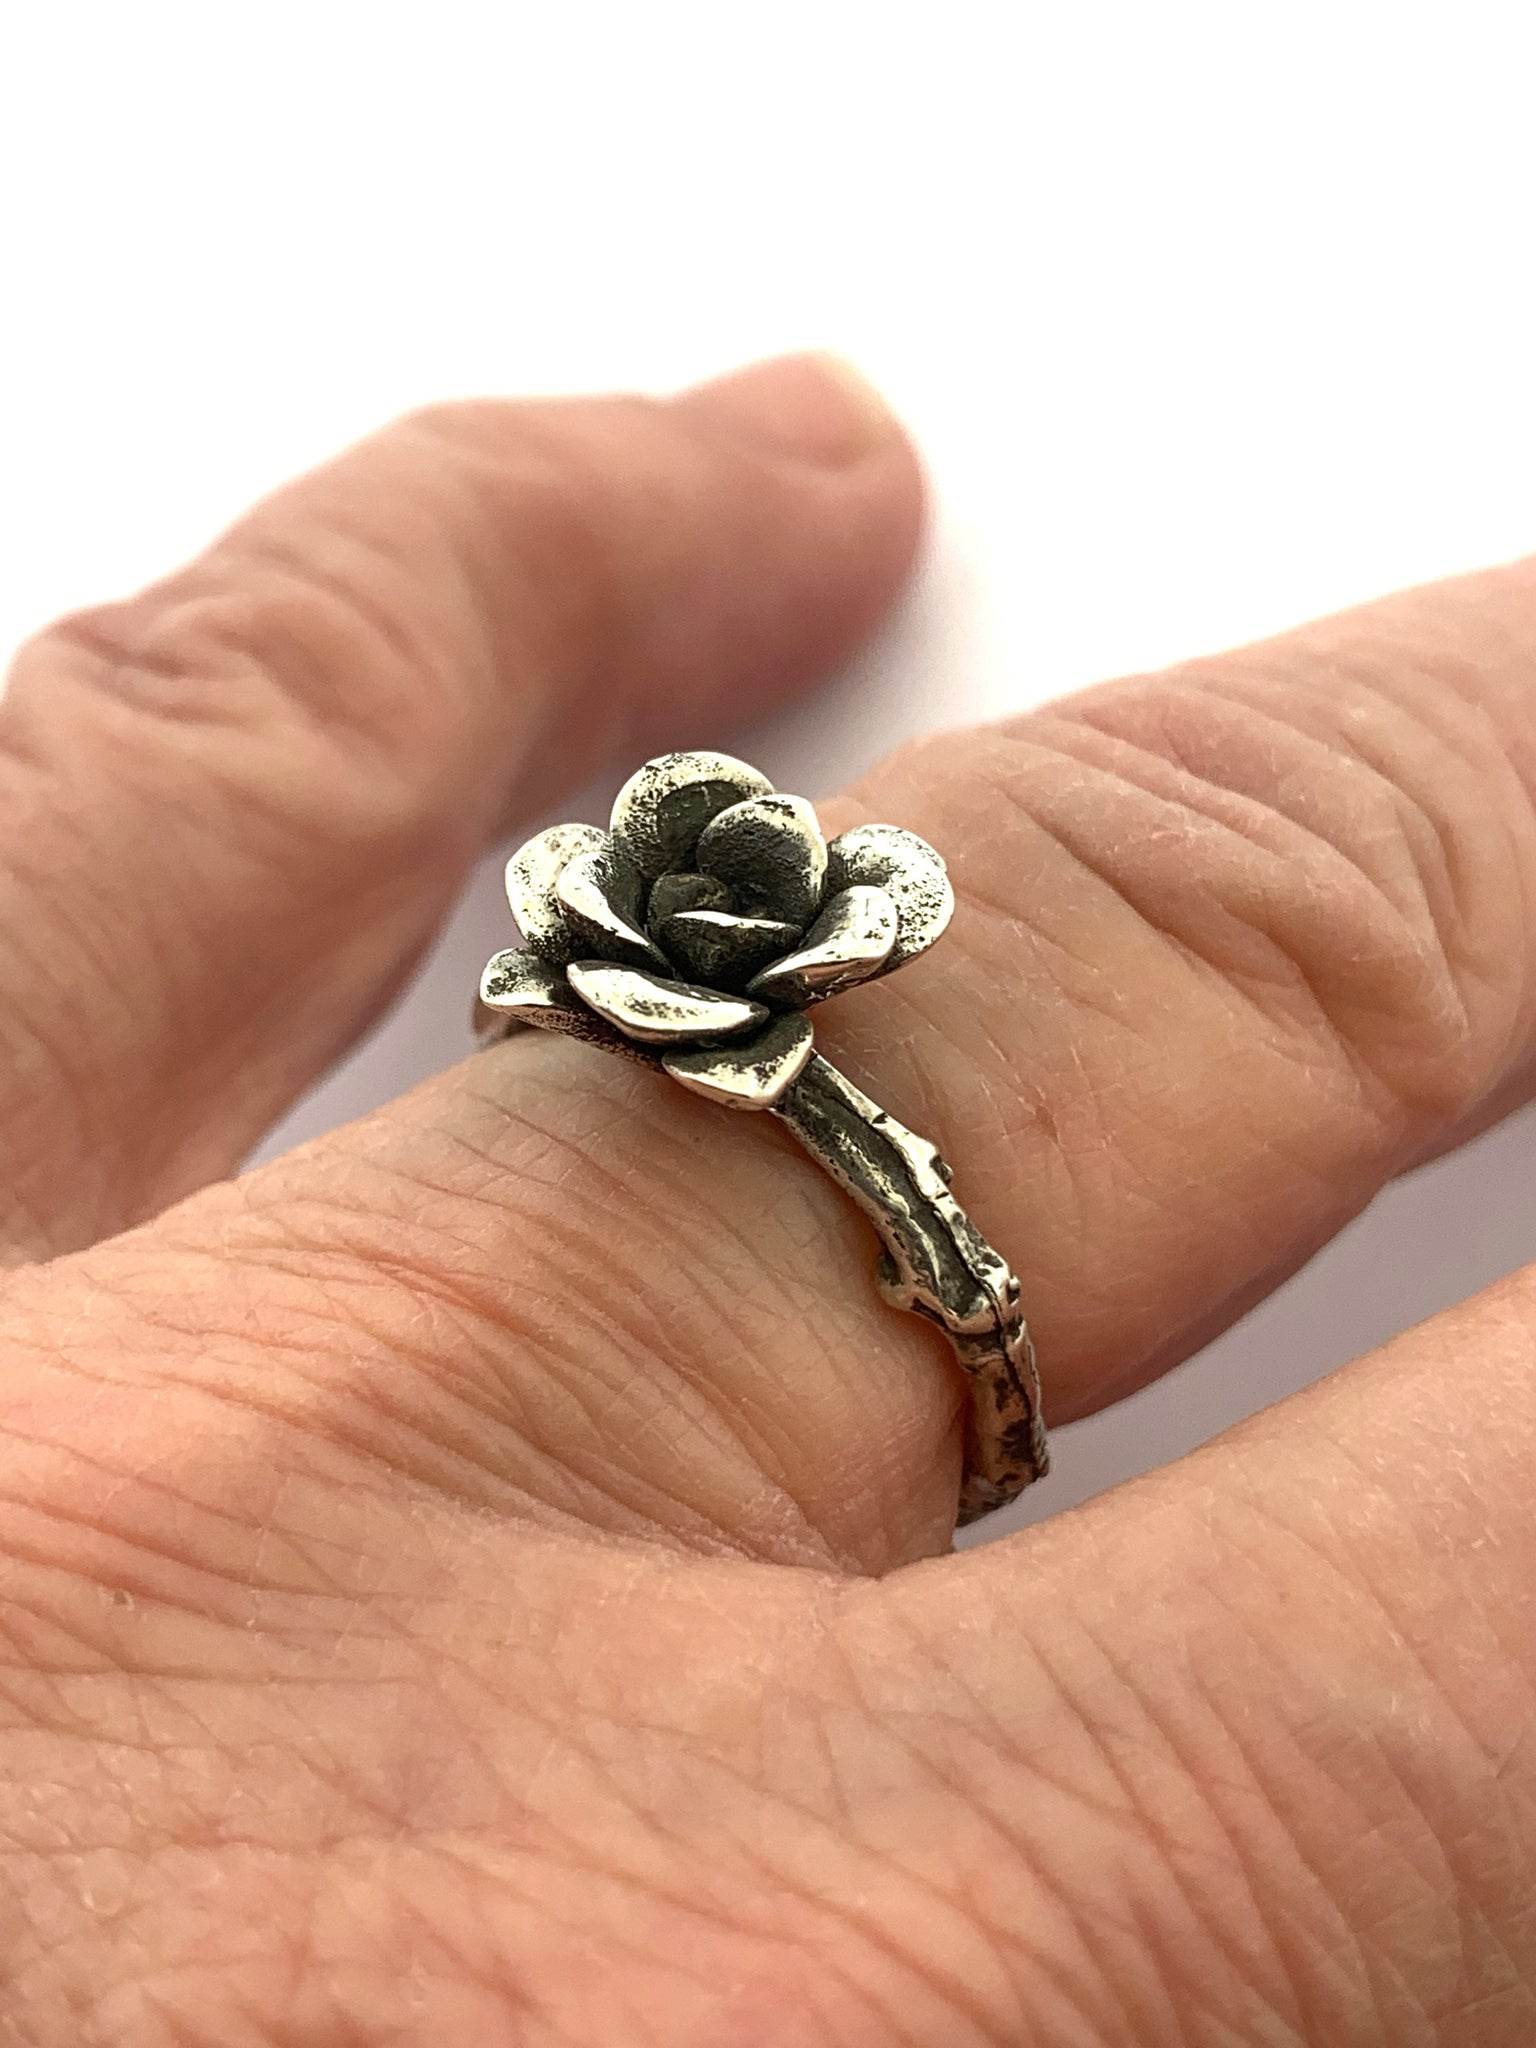 Flower Rings, Sterling Silver Garden Rings, Natural Flower Rings, Nature Lover Jewelry, OOAK Statement Rings, Mothers Day Gifts